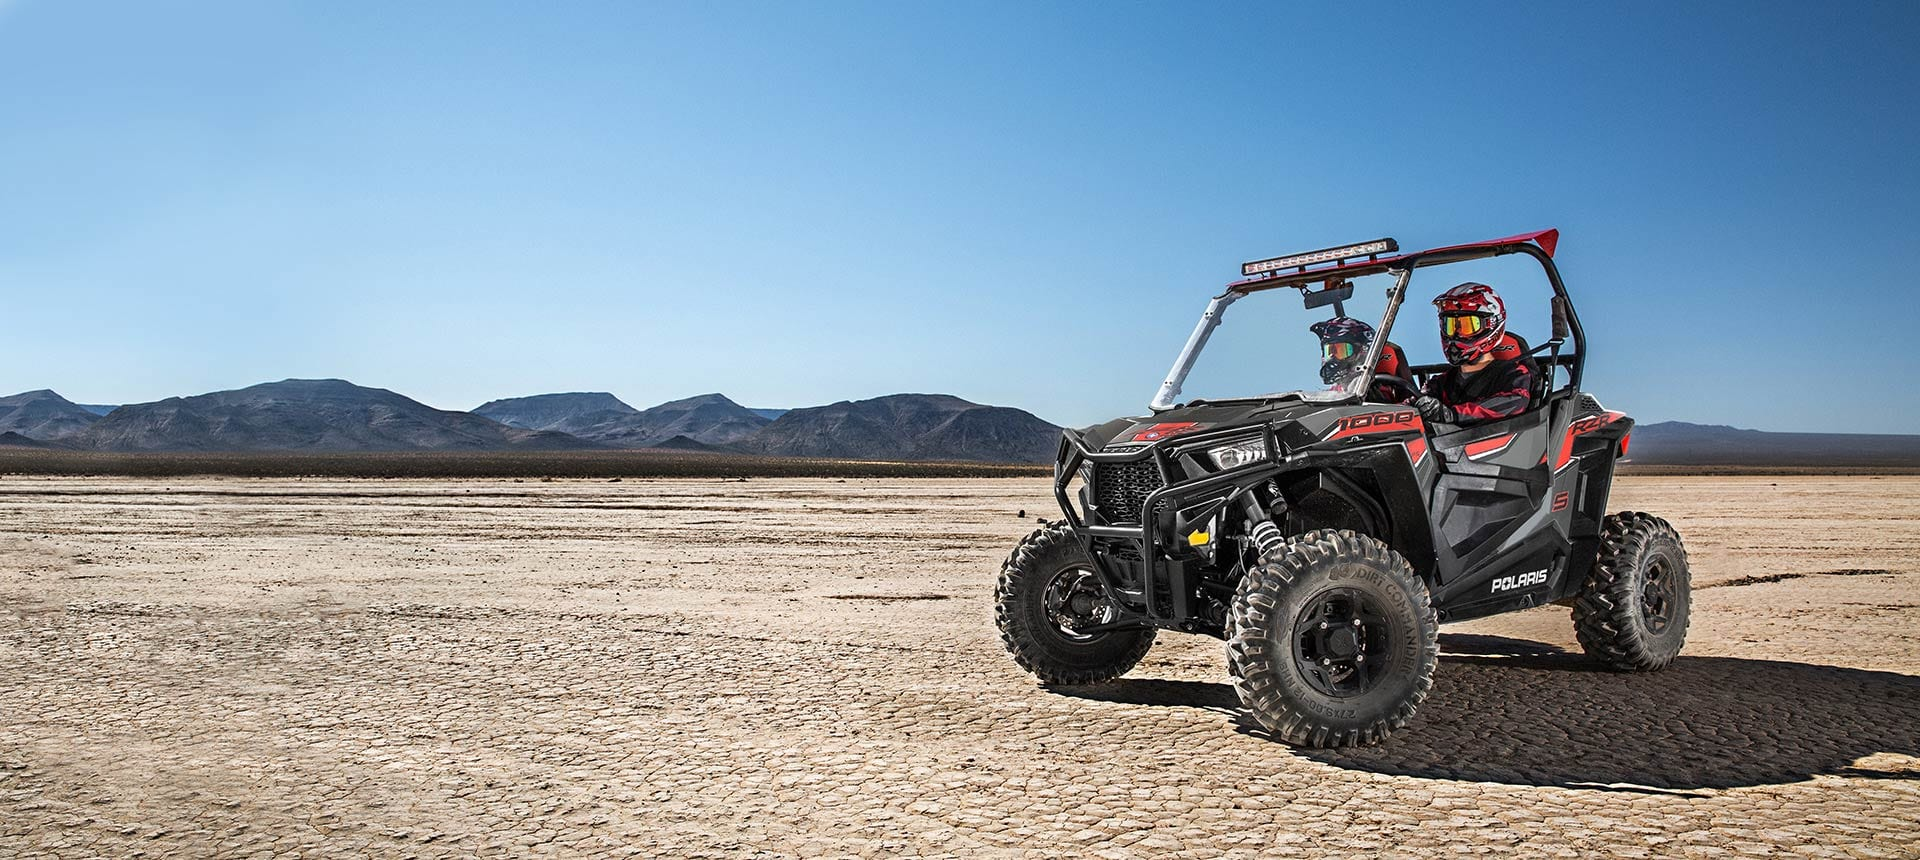 RZR S 1000 OFFROAD VEHICLE